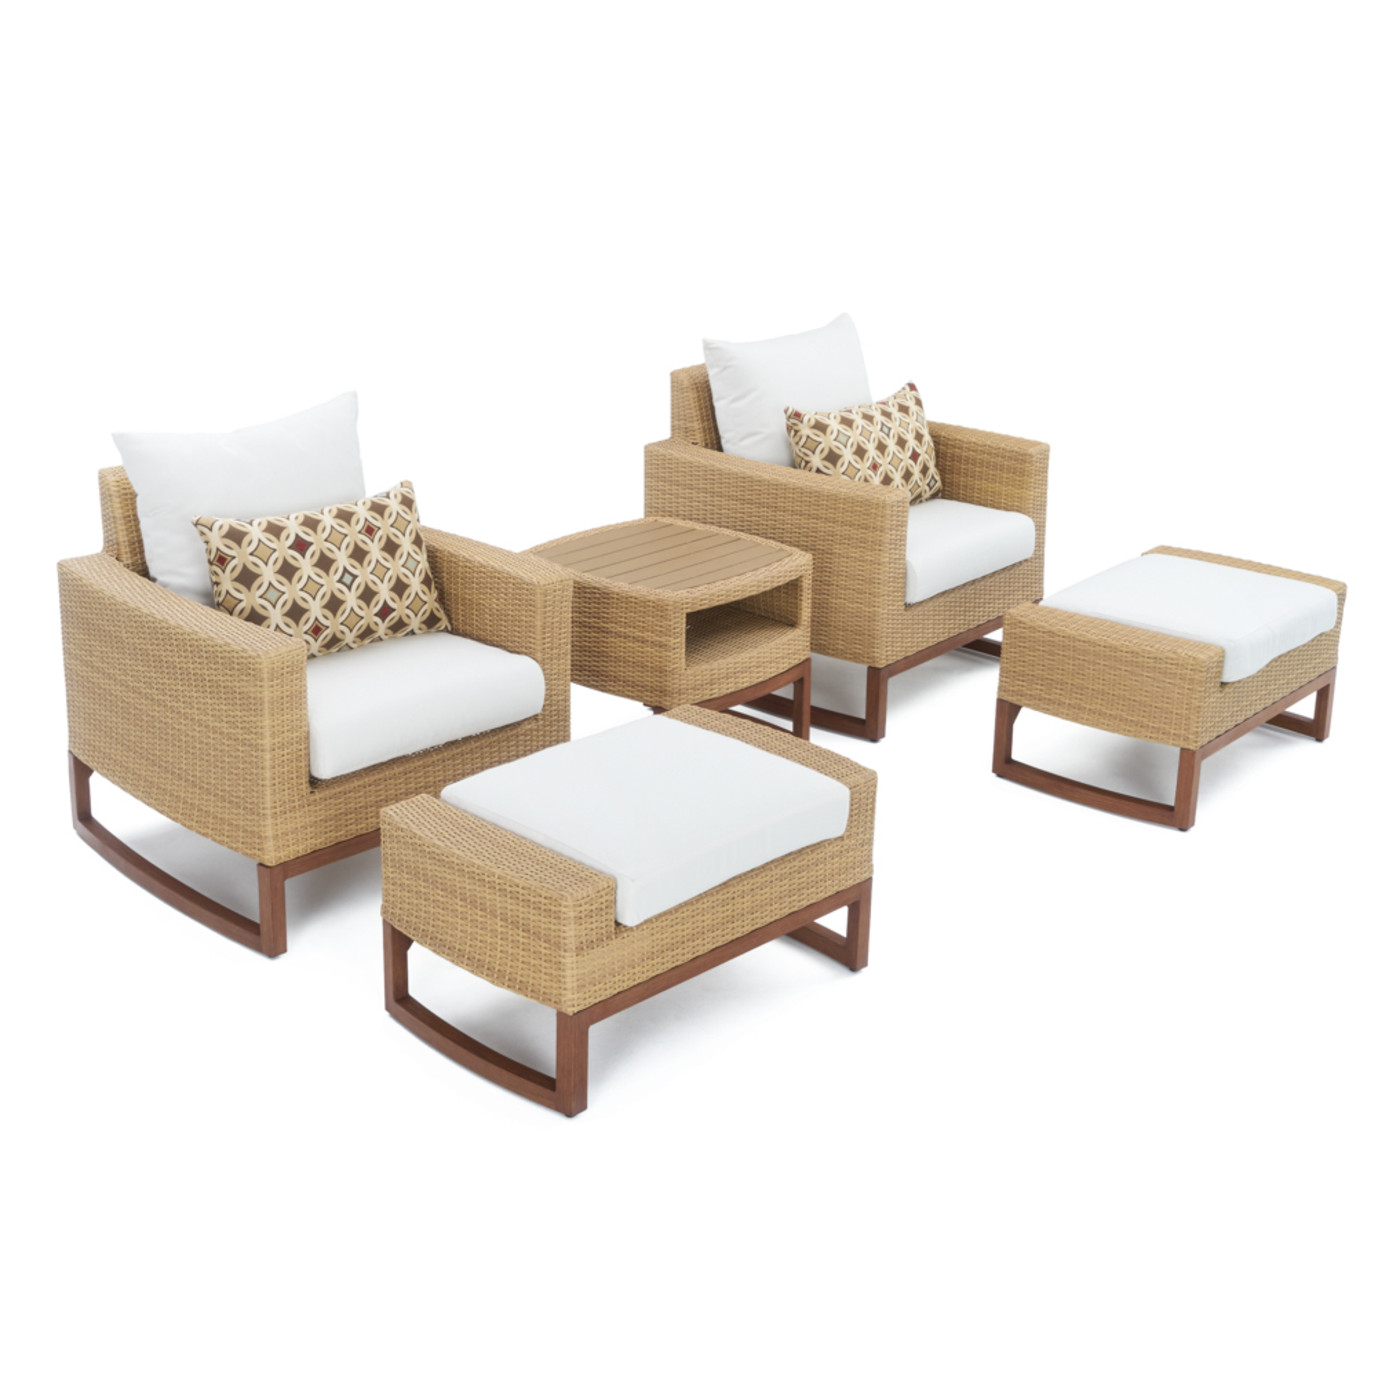 Mili™ 5pc Club Chair & Ottoman Set - Moroccan Cream